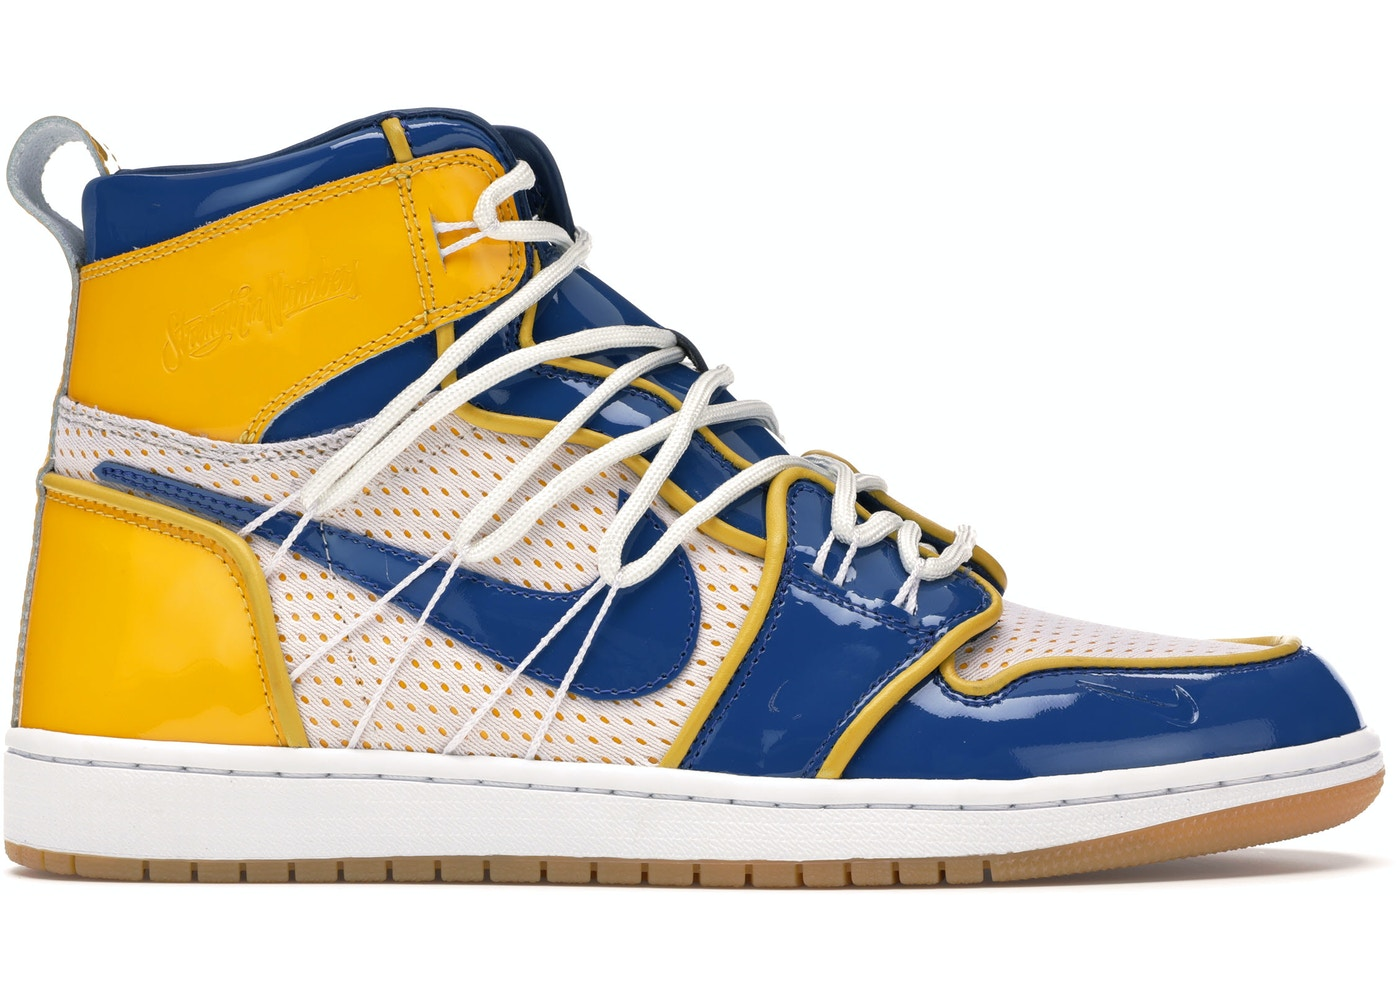 2106dc1ed17a Golden State Warriors x Shoe Surgeon Charity Campaign